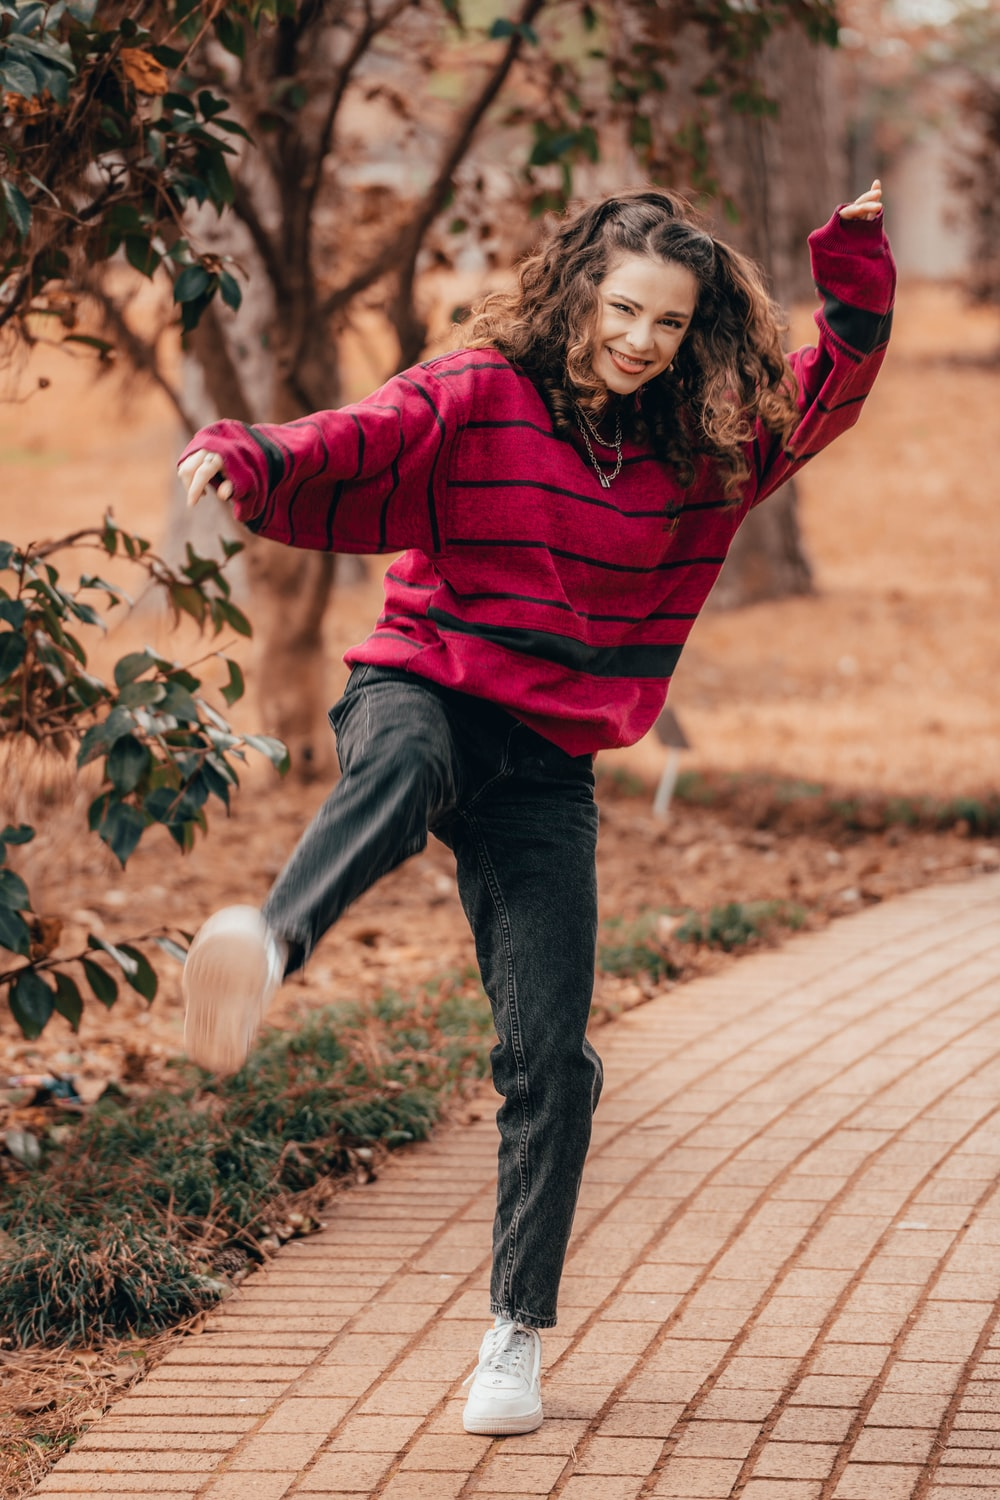 woman in red long sleeve shirt and blue denim jeans jumping on brown brick pathway during